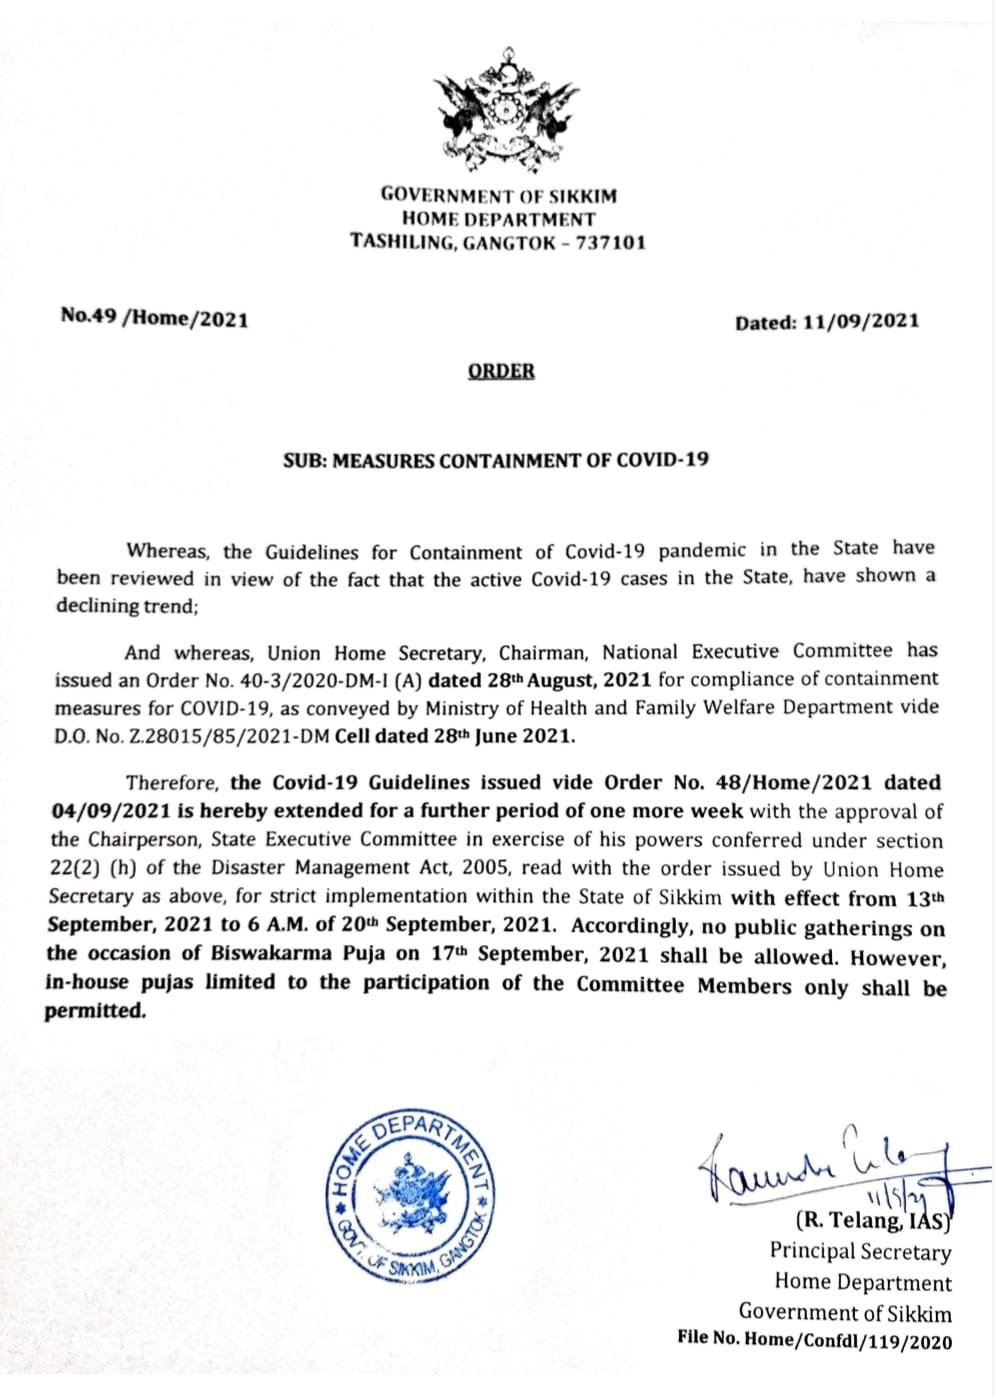 Covid-19 Order from Home Department, Government of Sikkim